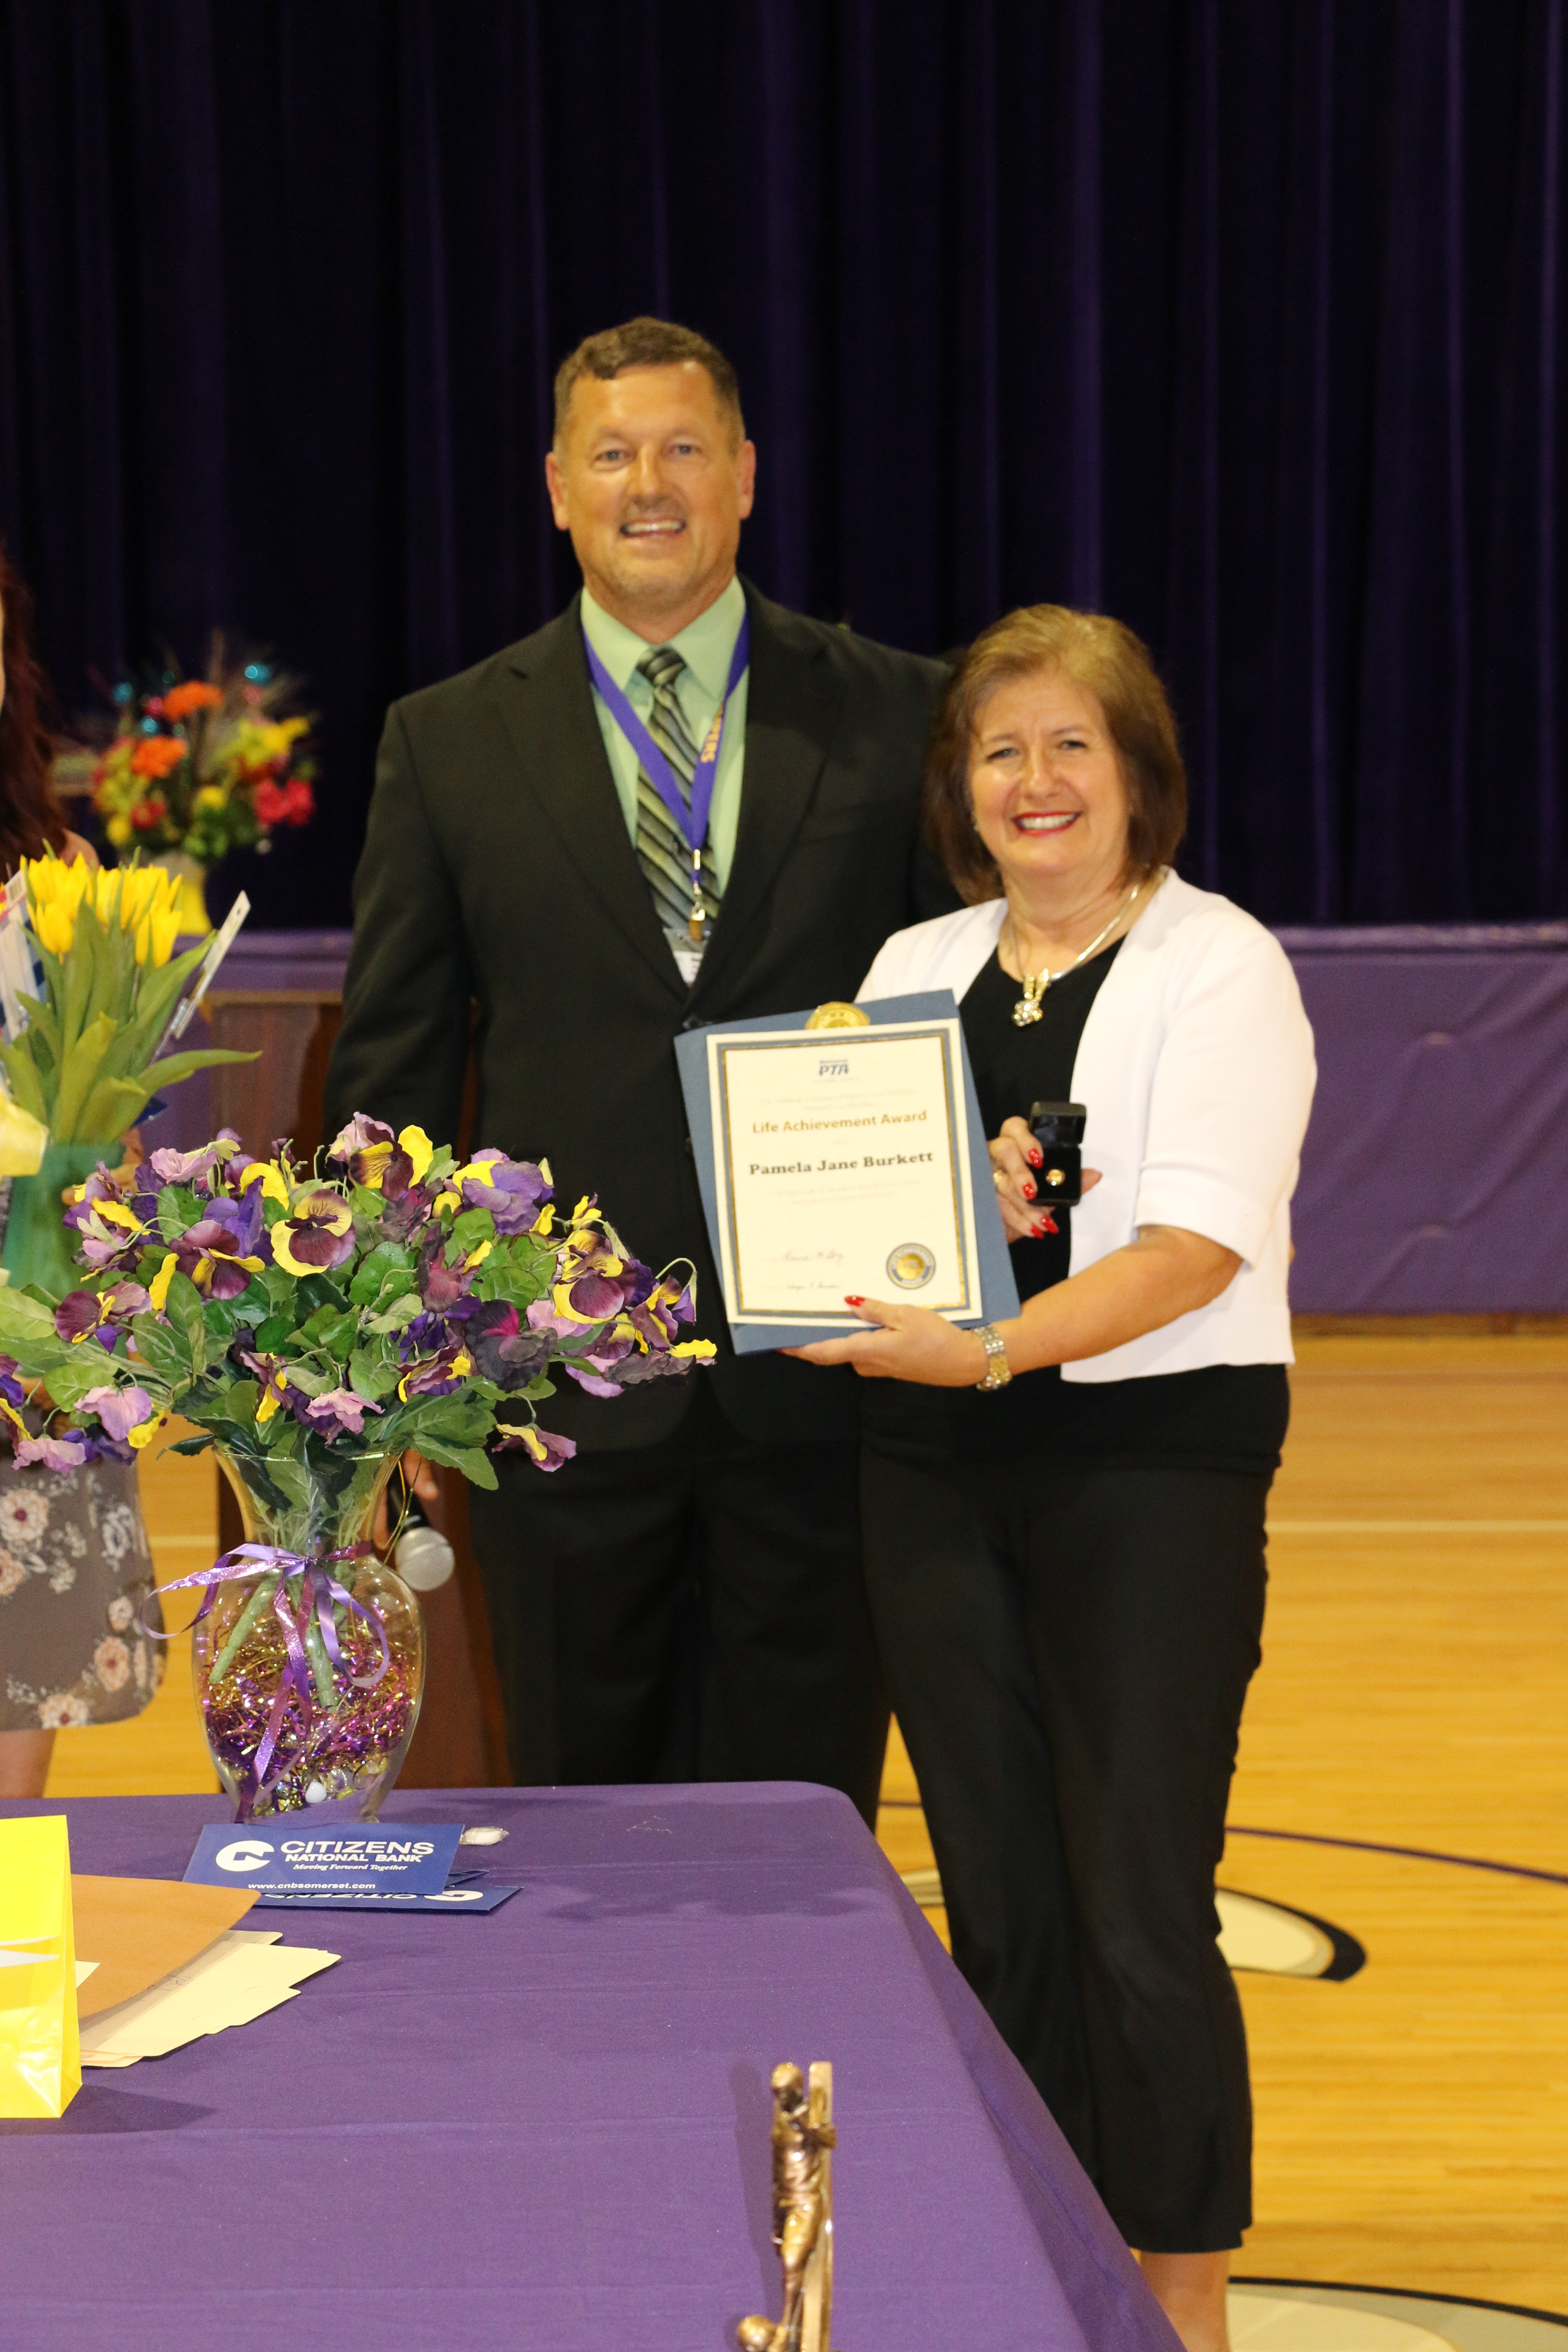 National PTA Honors Life Achievement Award